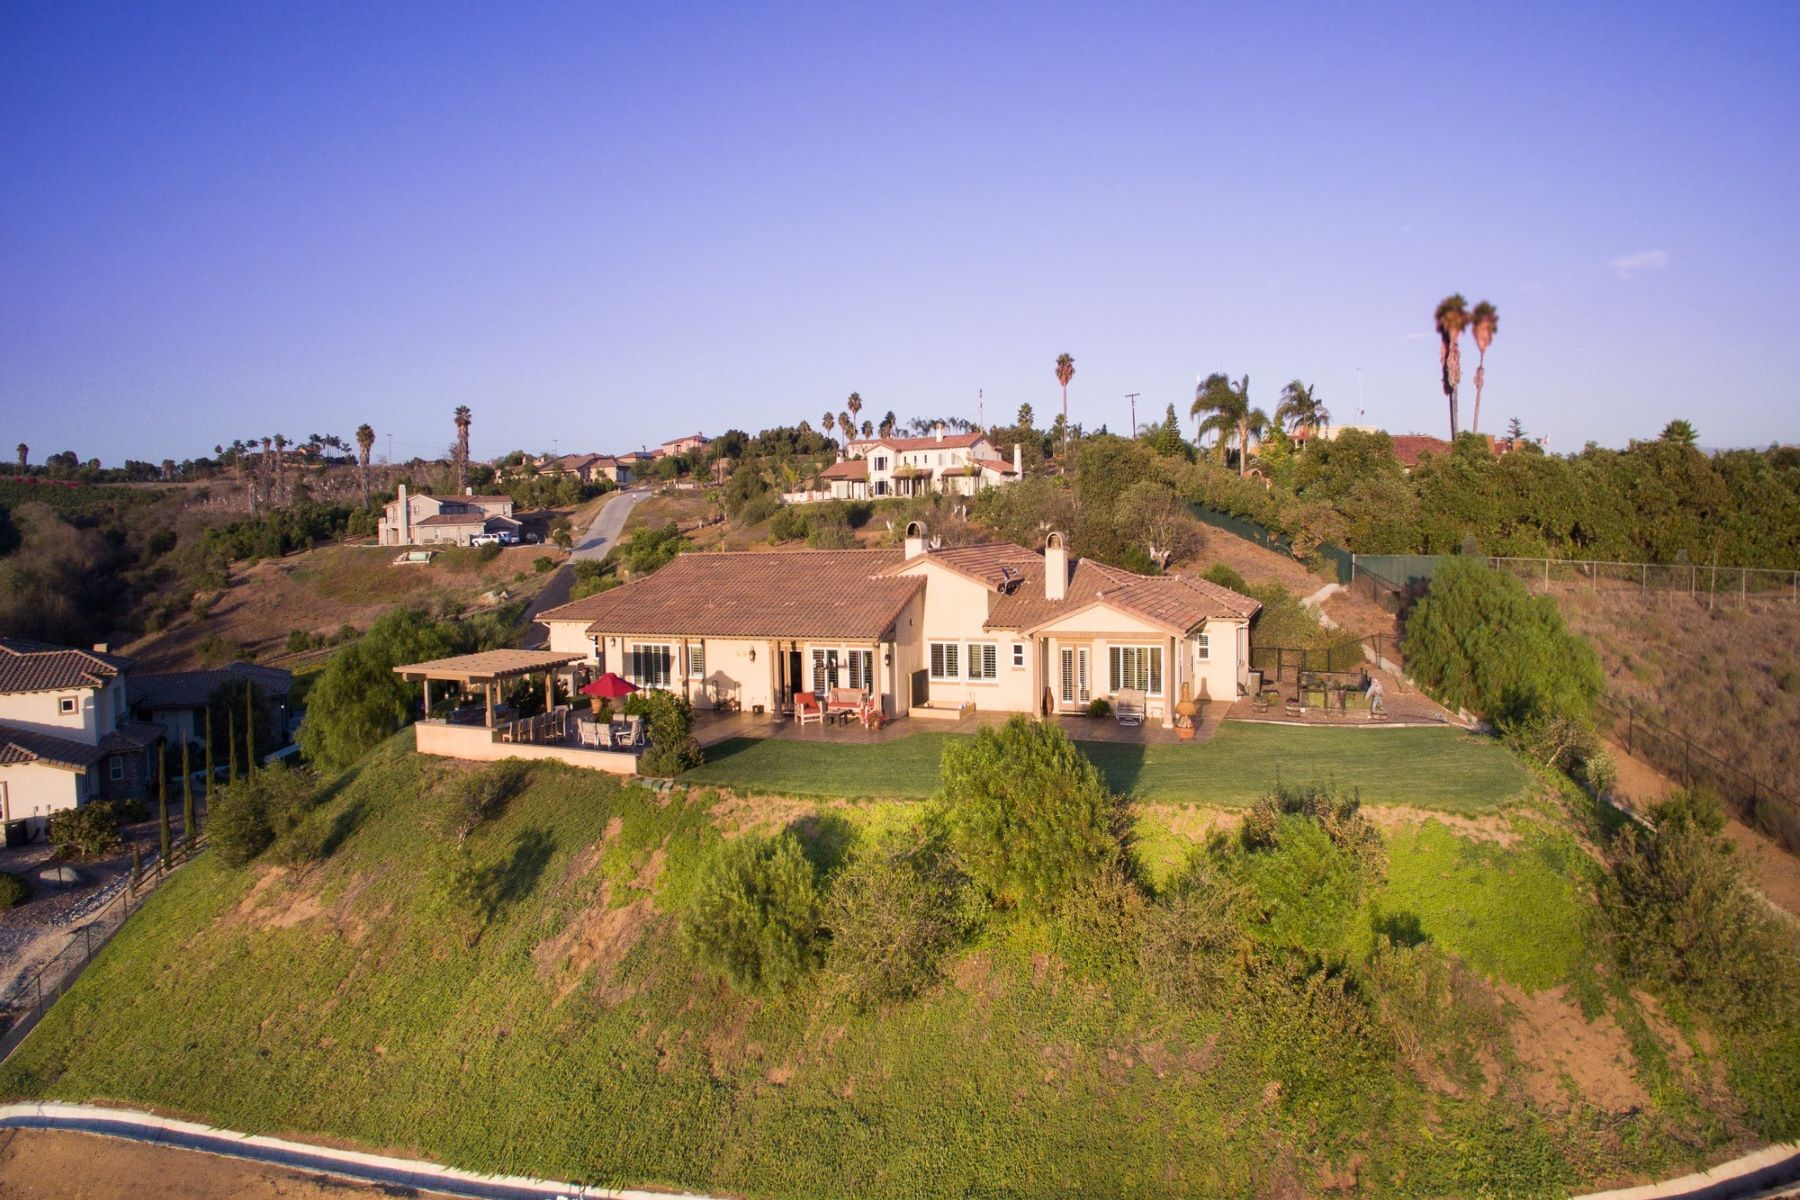 Single Family Homes for Sale at 5605 Hidden Grove Way Bonsall, California 92003 United States